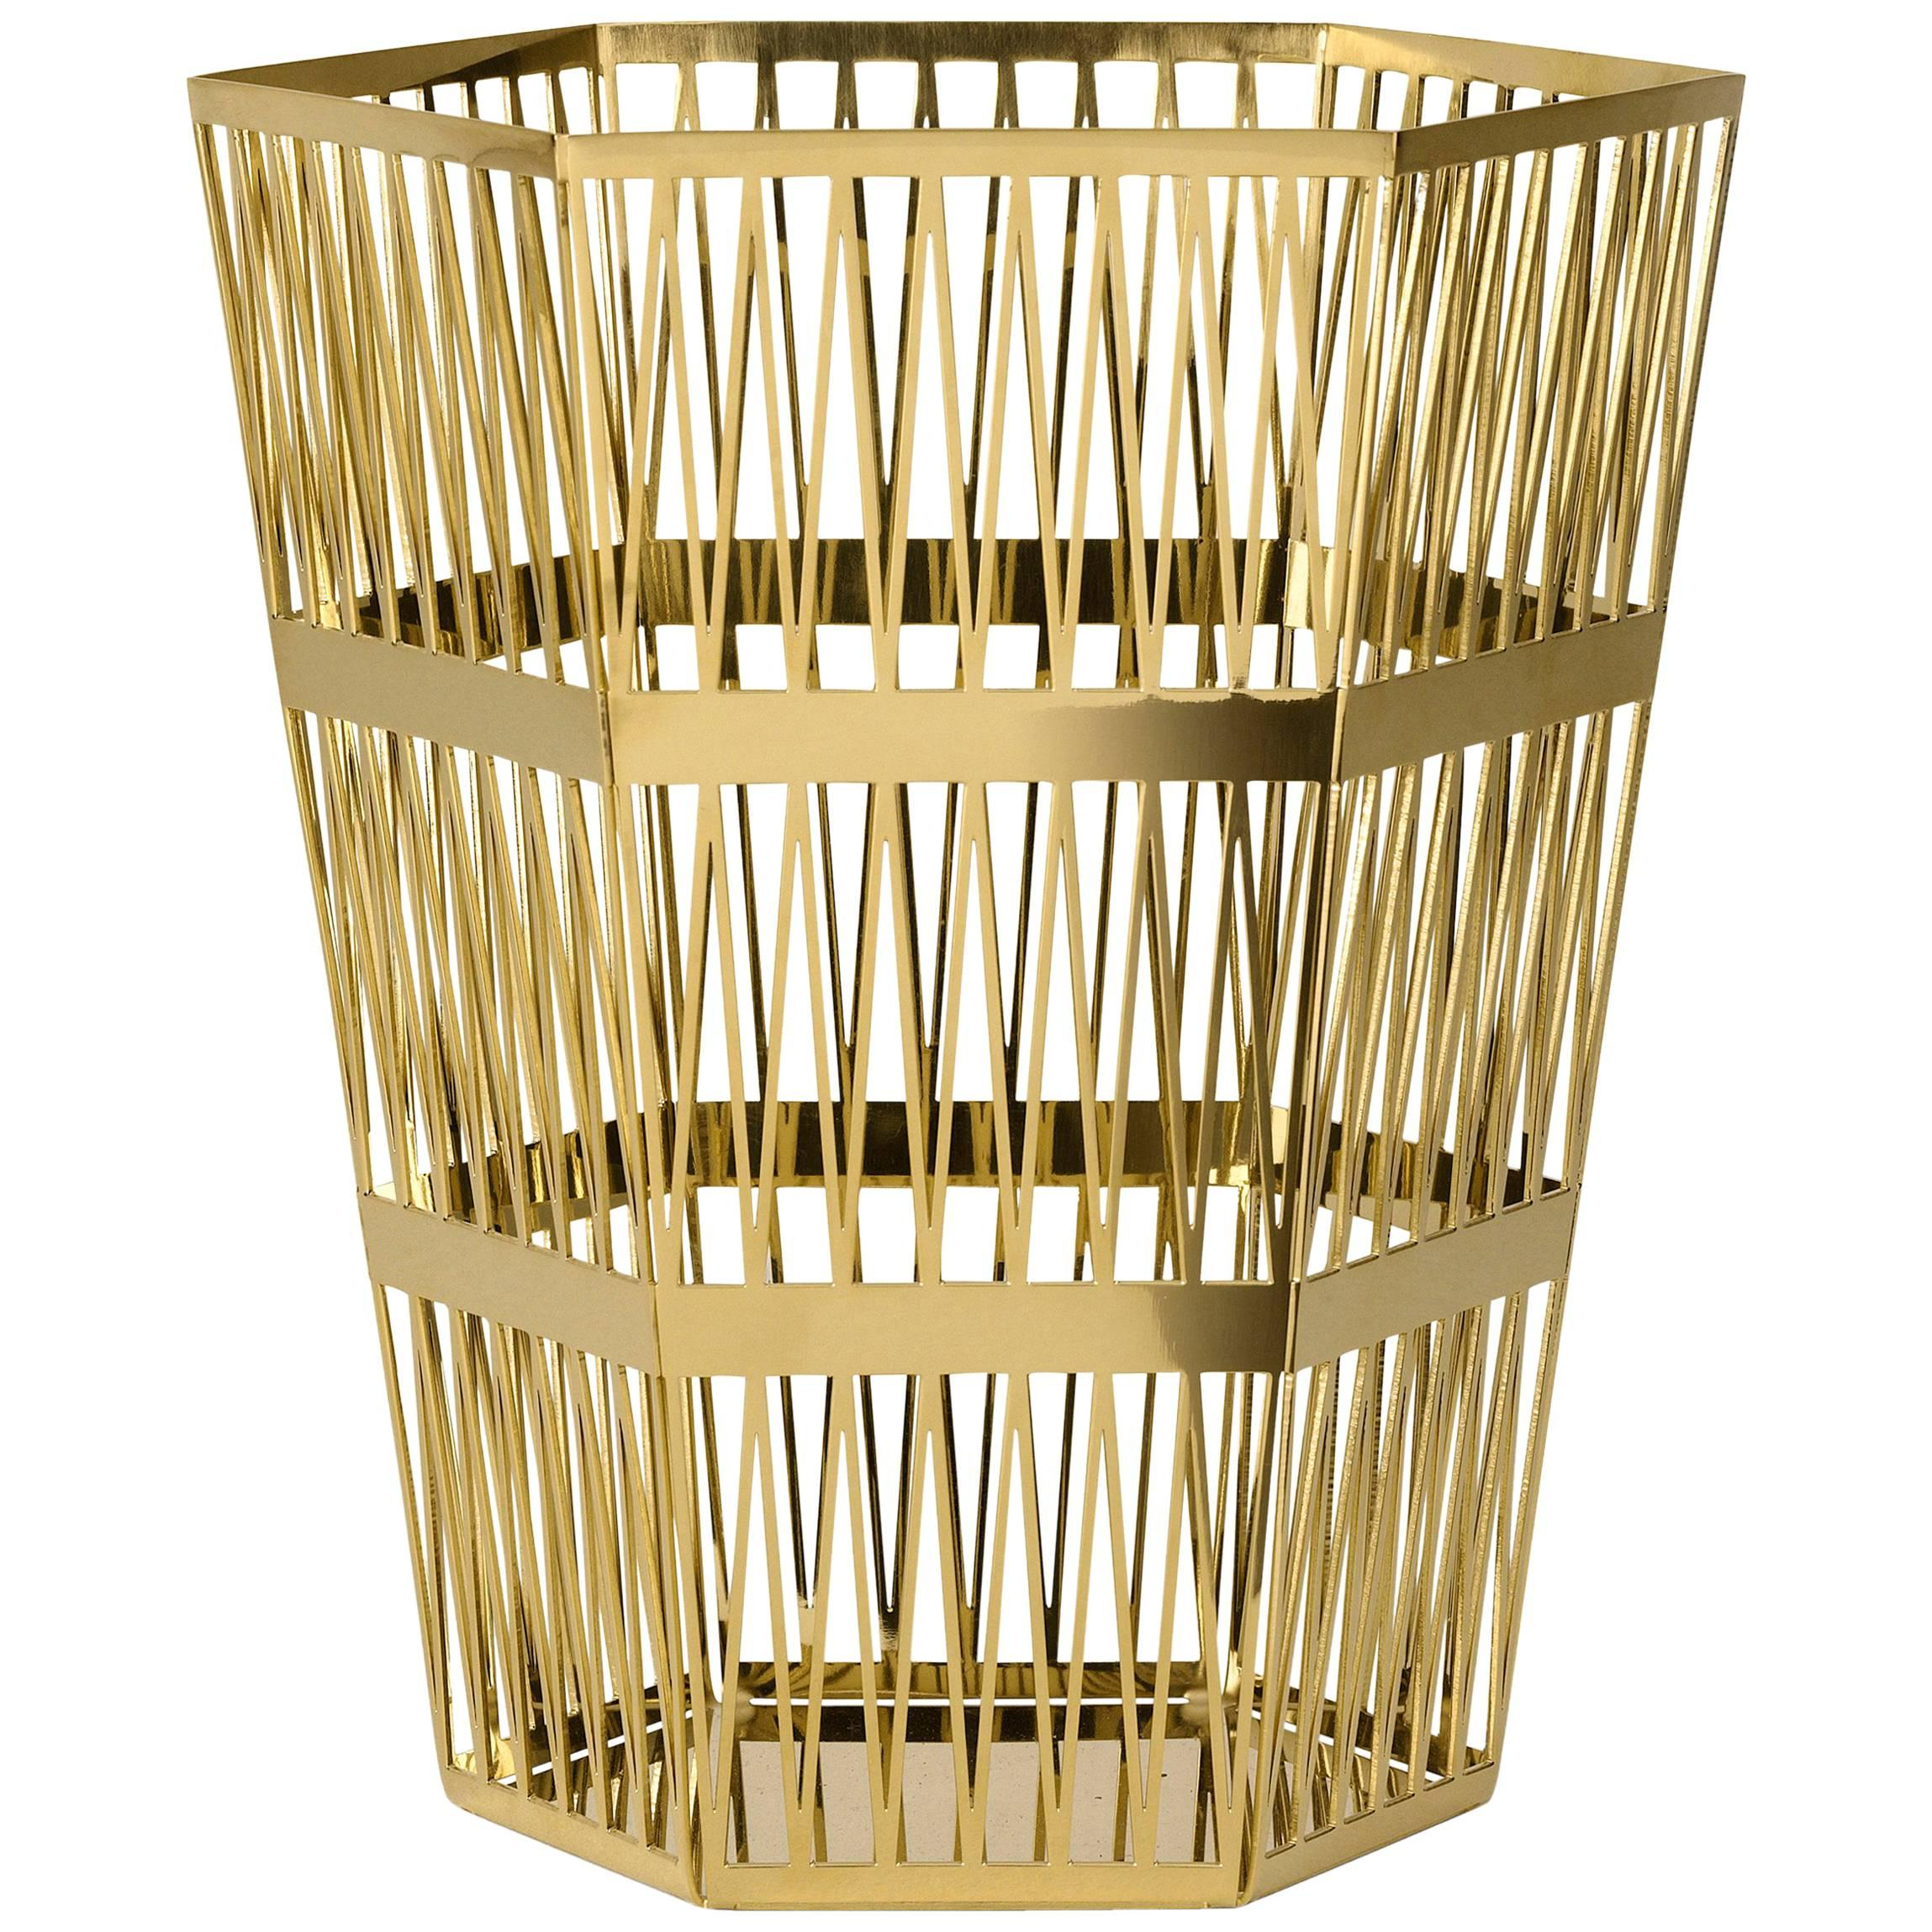 Ghidini 1961 Tip Top Small Paper Basket in Polished Gold Finish